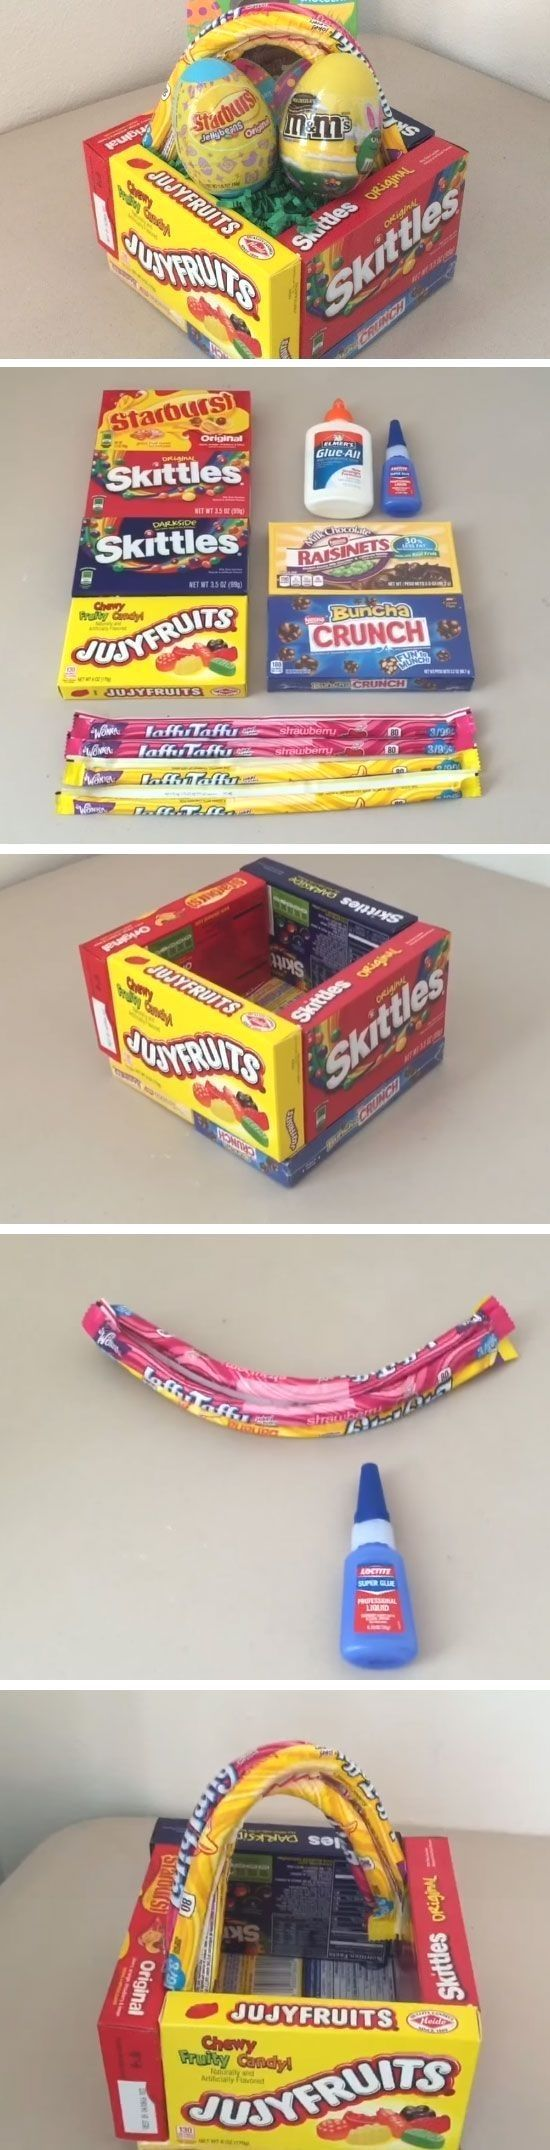 Candy Box  Easy DIY Easter Basket Ideas for Kids  DIY Gift Baskets for Friends Cute Ideas